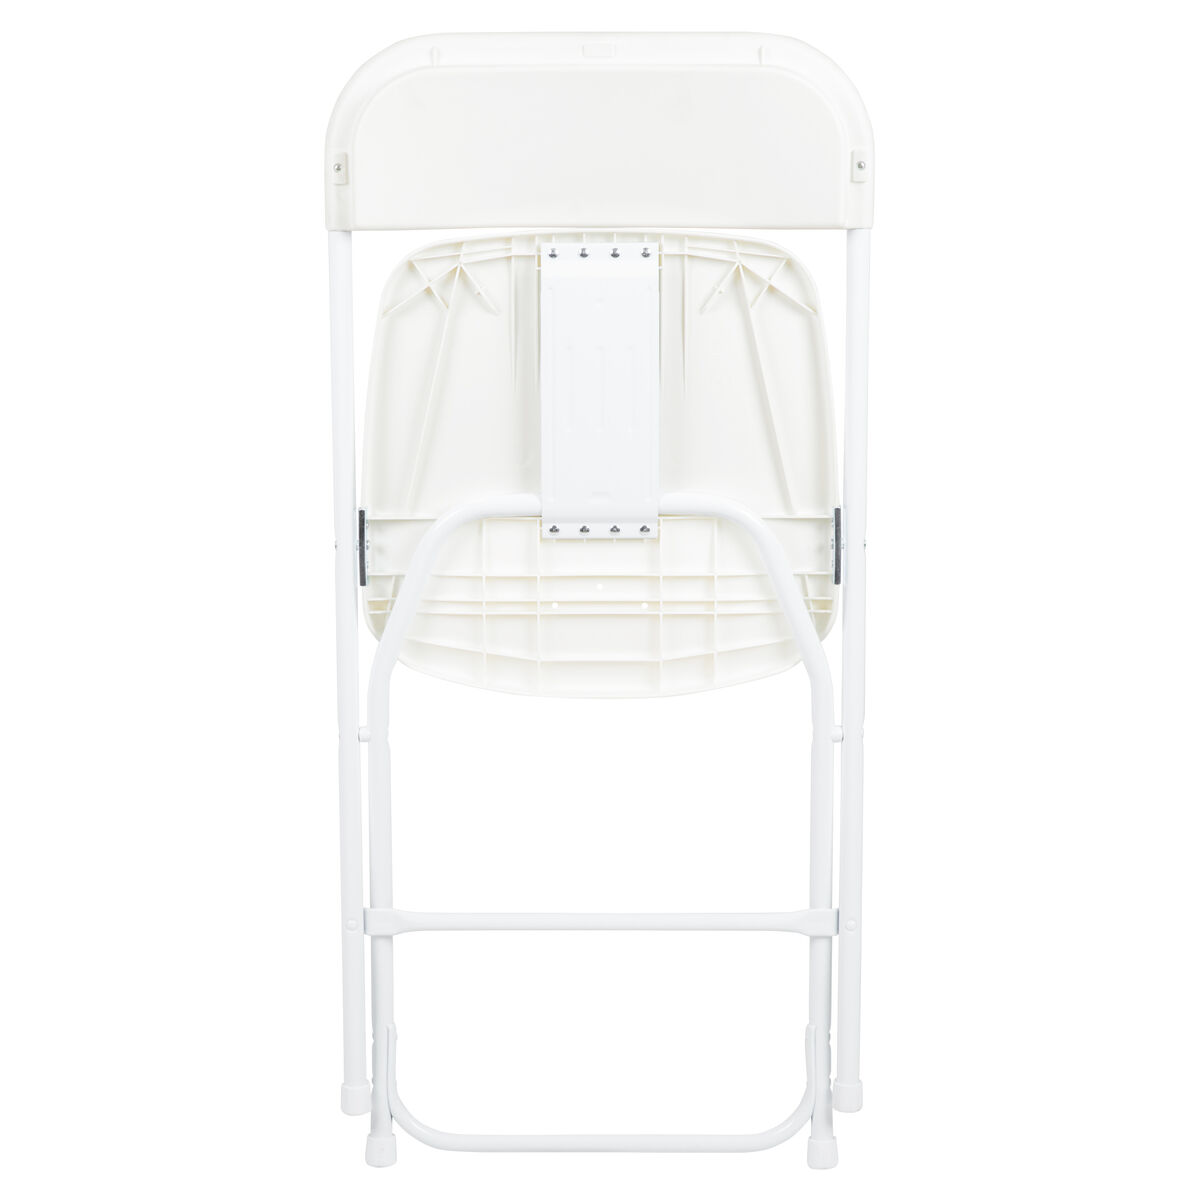 Pleasing Hercules Series 650 Lb Capacity Premium White Plastic Folding Chair Gamerscity Chair Design For Home Gamerscityorg